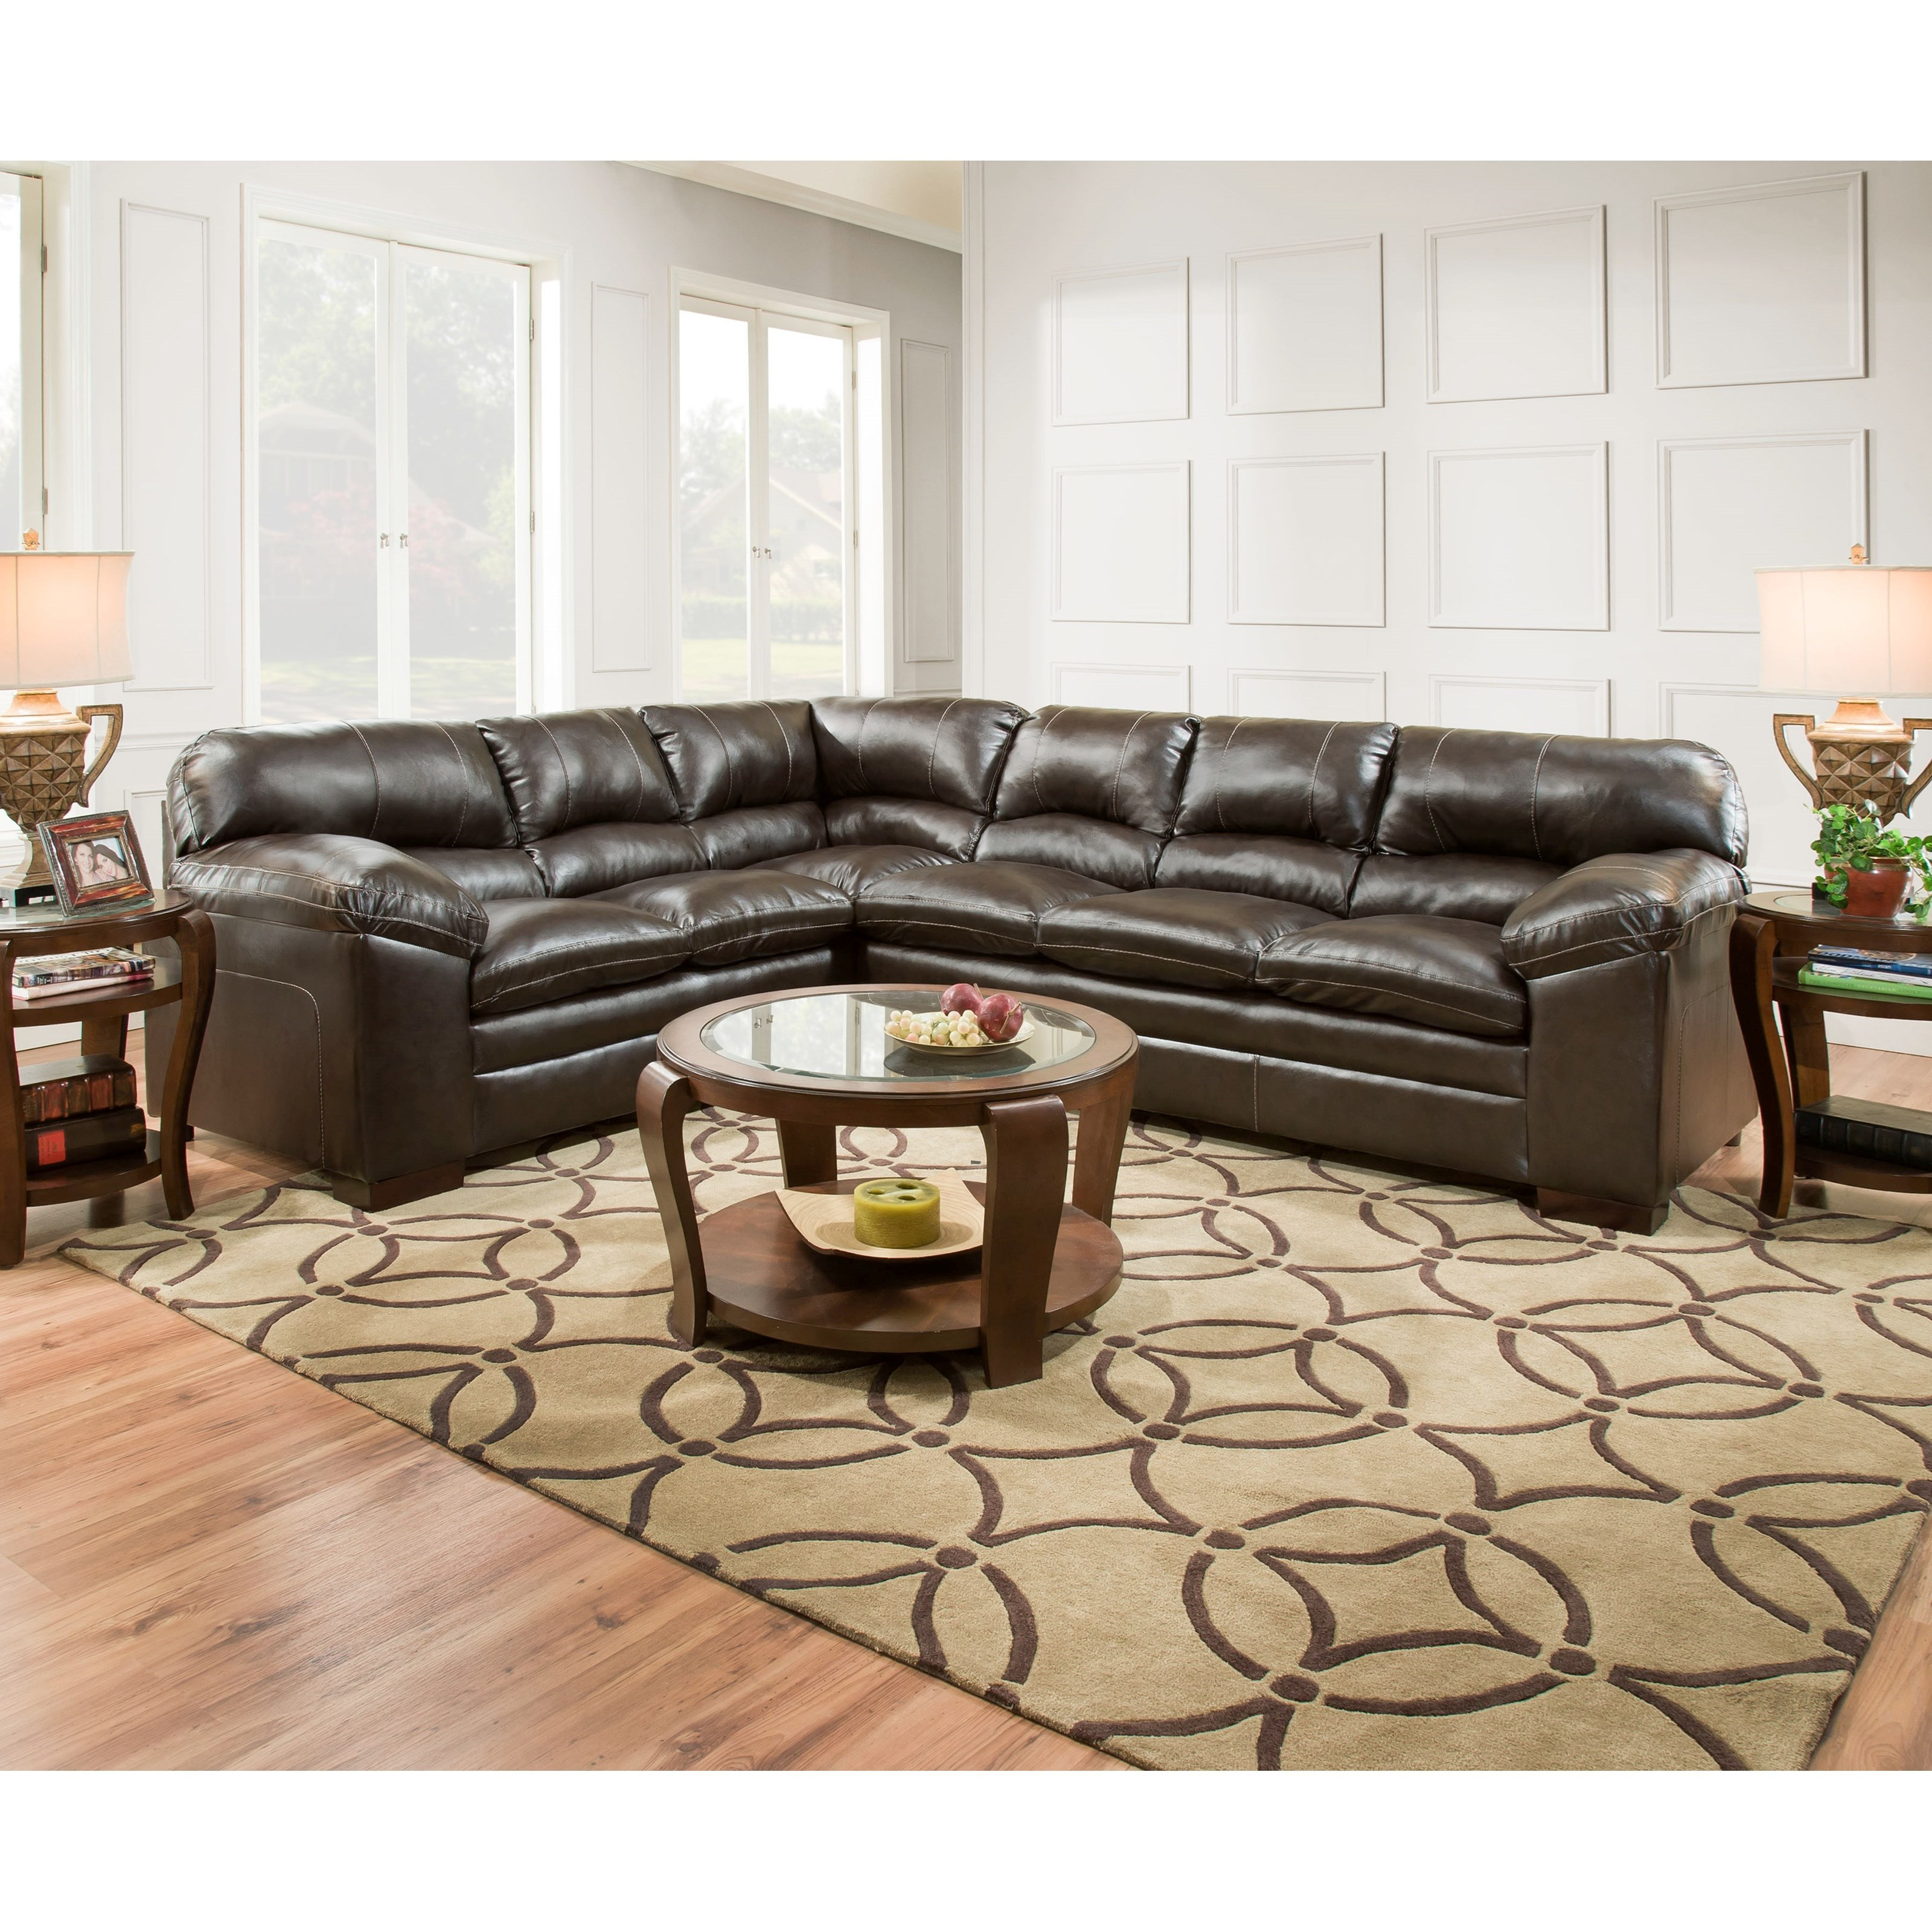 United Furniture Industries 8049 Casual Sectional Sofa - Item Number: 8049LAFBumpSofa+RAFSofa-BingoBrown